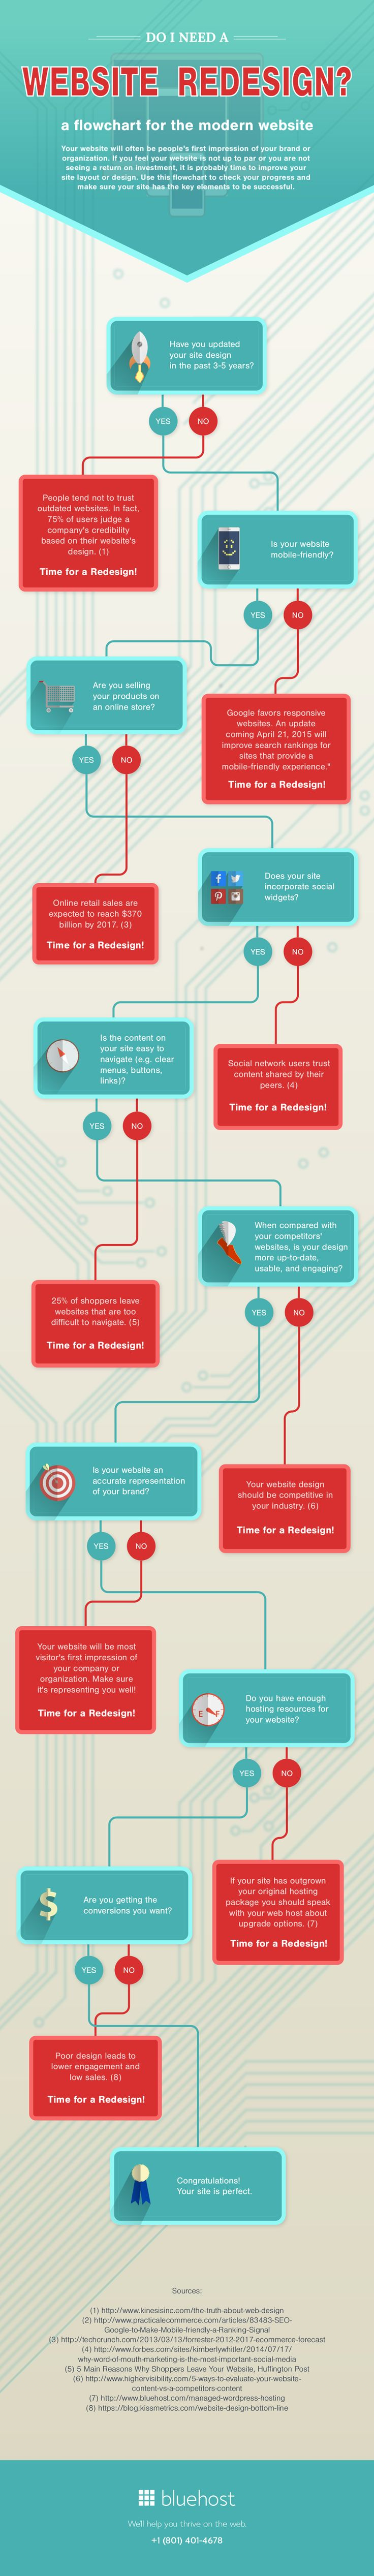 Not sure if your website is in need of serious renovation? Follow the infographic to find out!